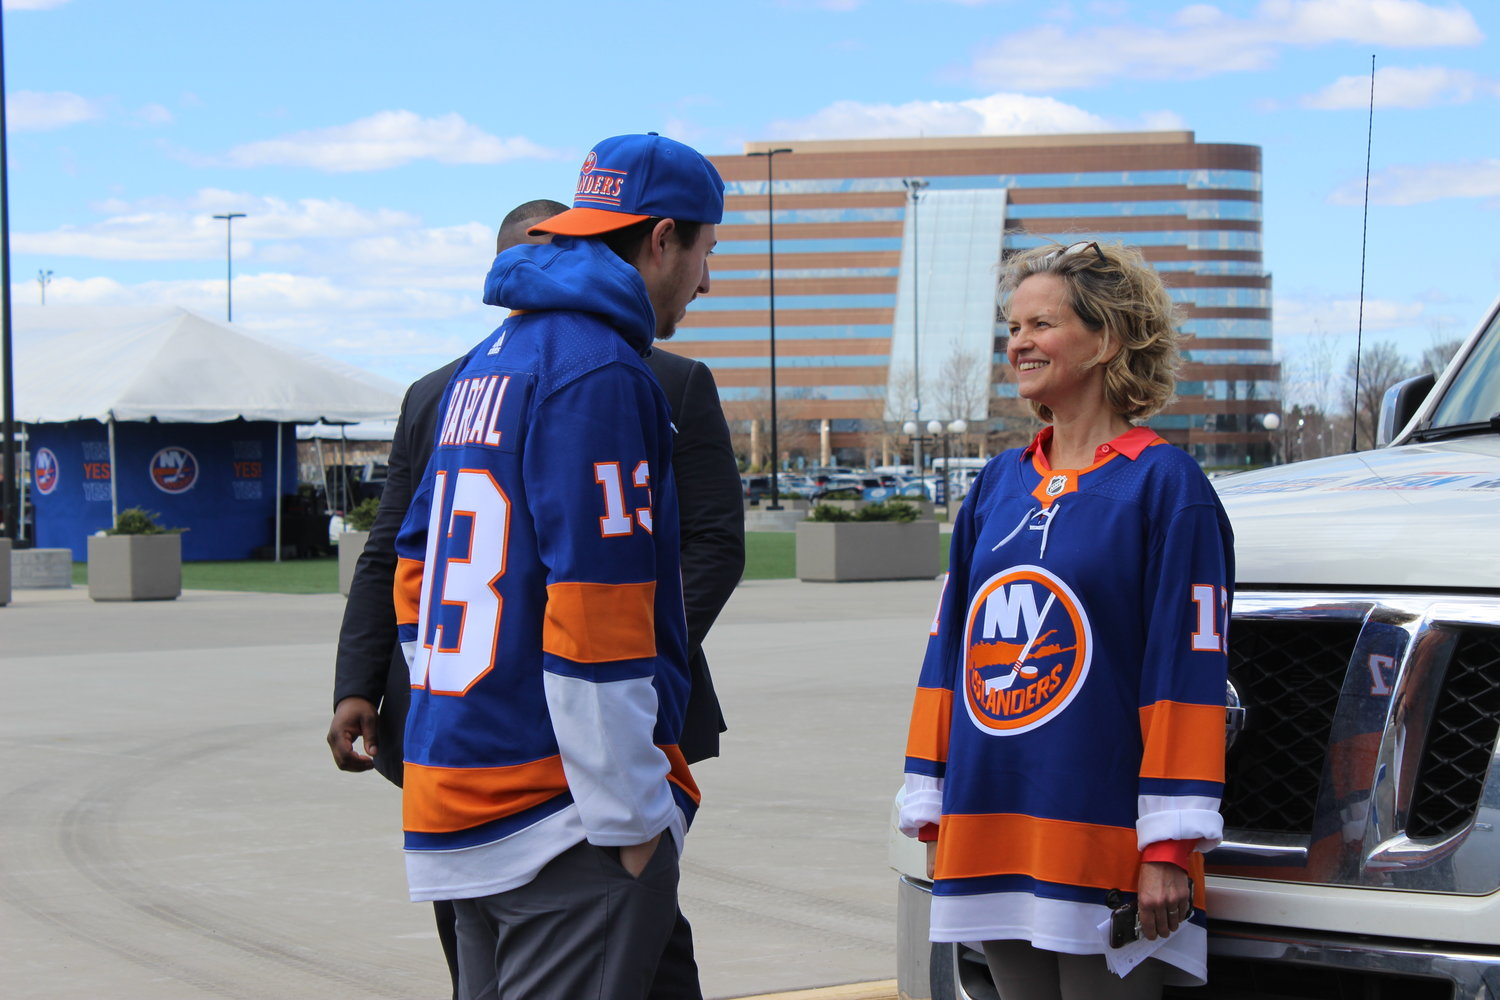 Curran spoke with Jordan Baptiste, left, who traveled from the city of Orleans in Ottawa, Canada, to see the Islanders pay at Nassau Coliseum for the first time.